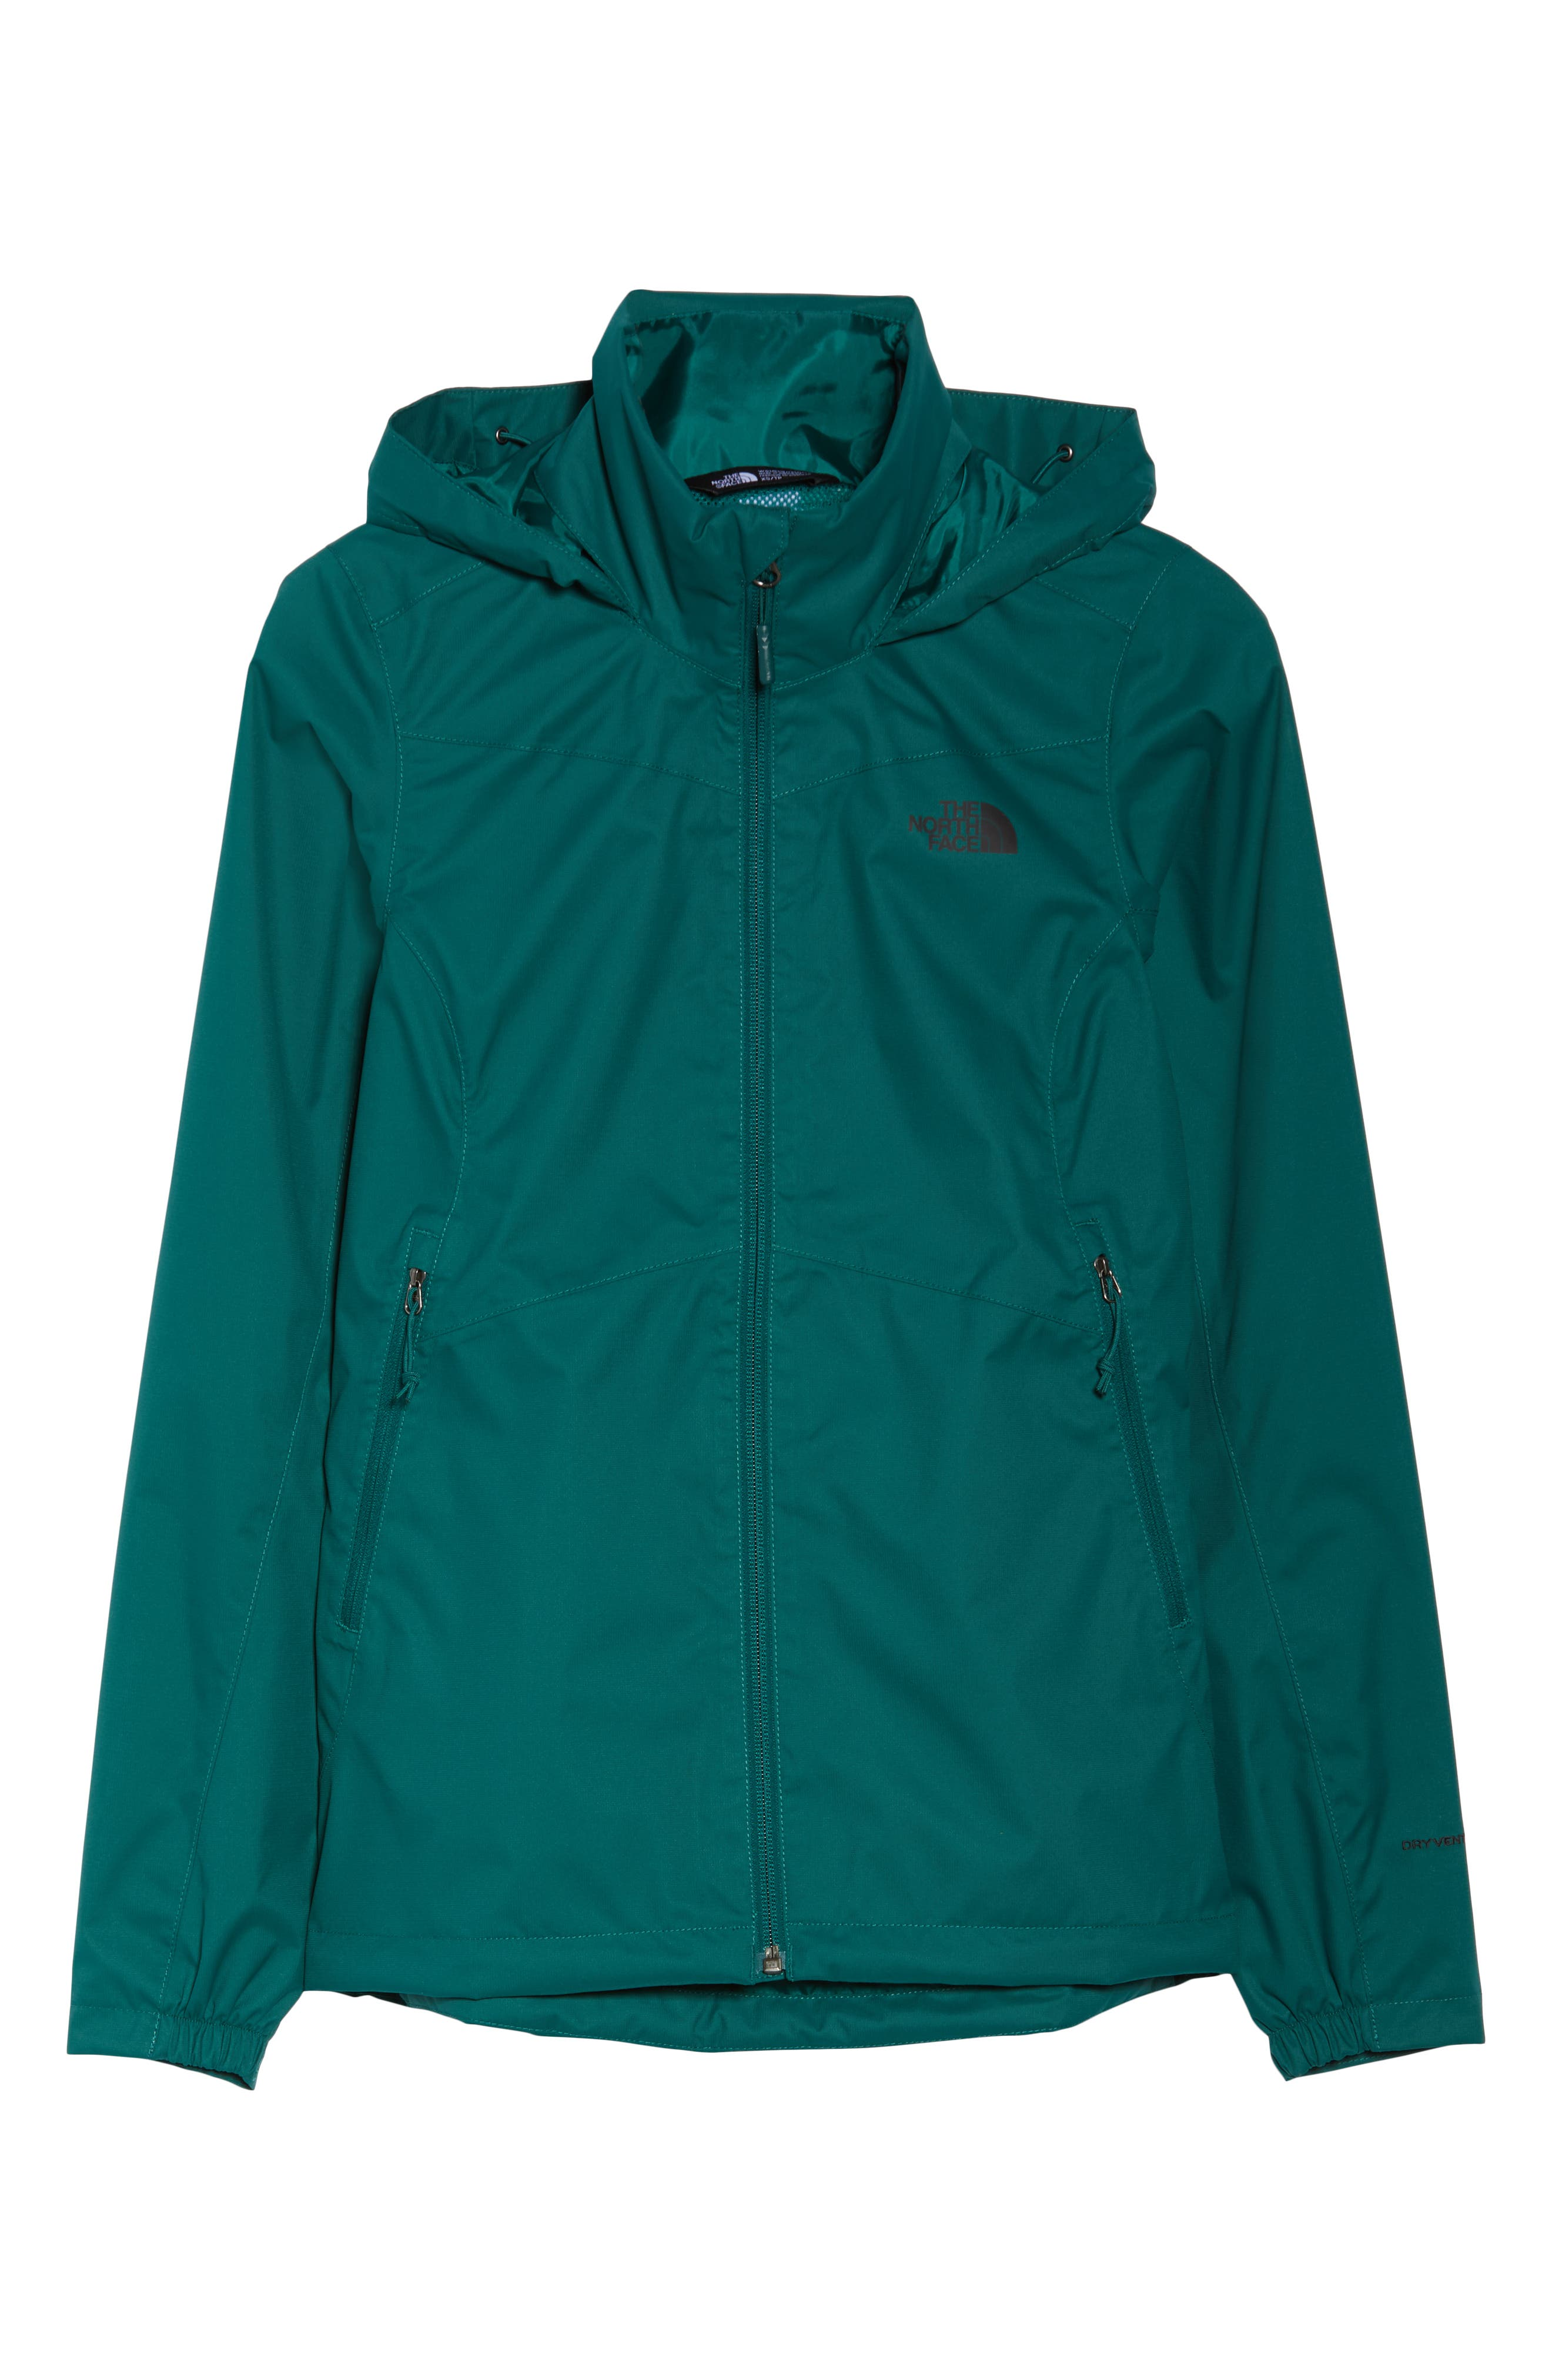 THE NORTH FACE, Resolve Plus Waterproof Jacket, Alternate thumbnail 6, color, 301